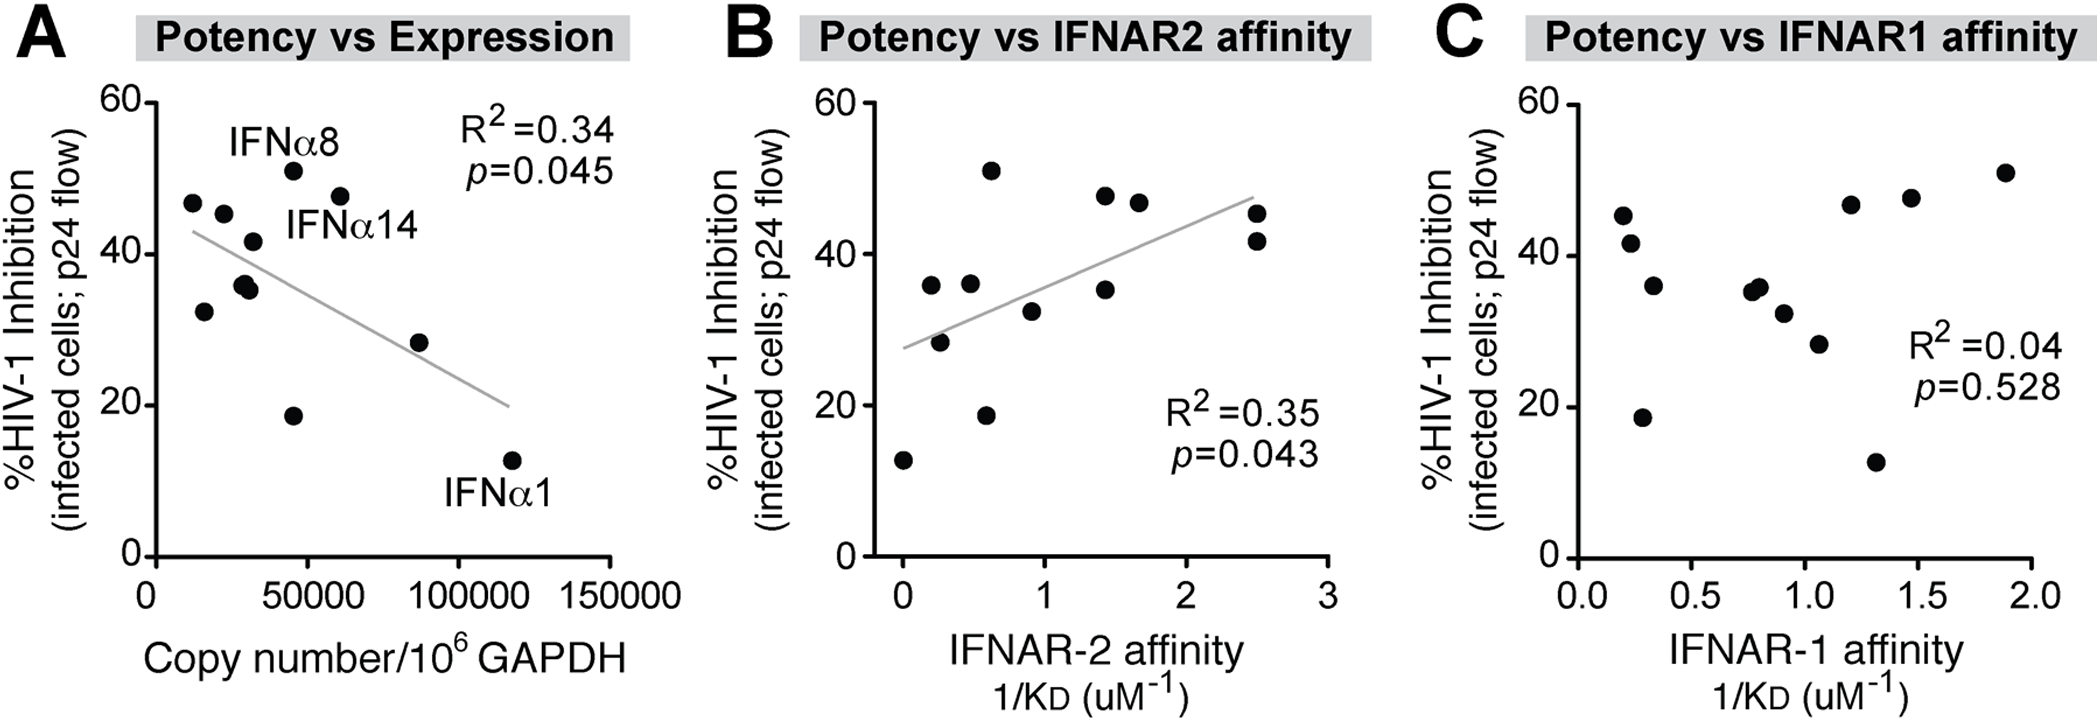 Correlation between IFNα antiviral potency and various parameters.